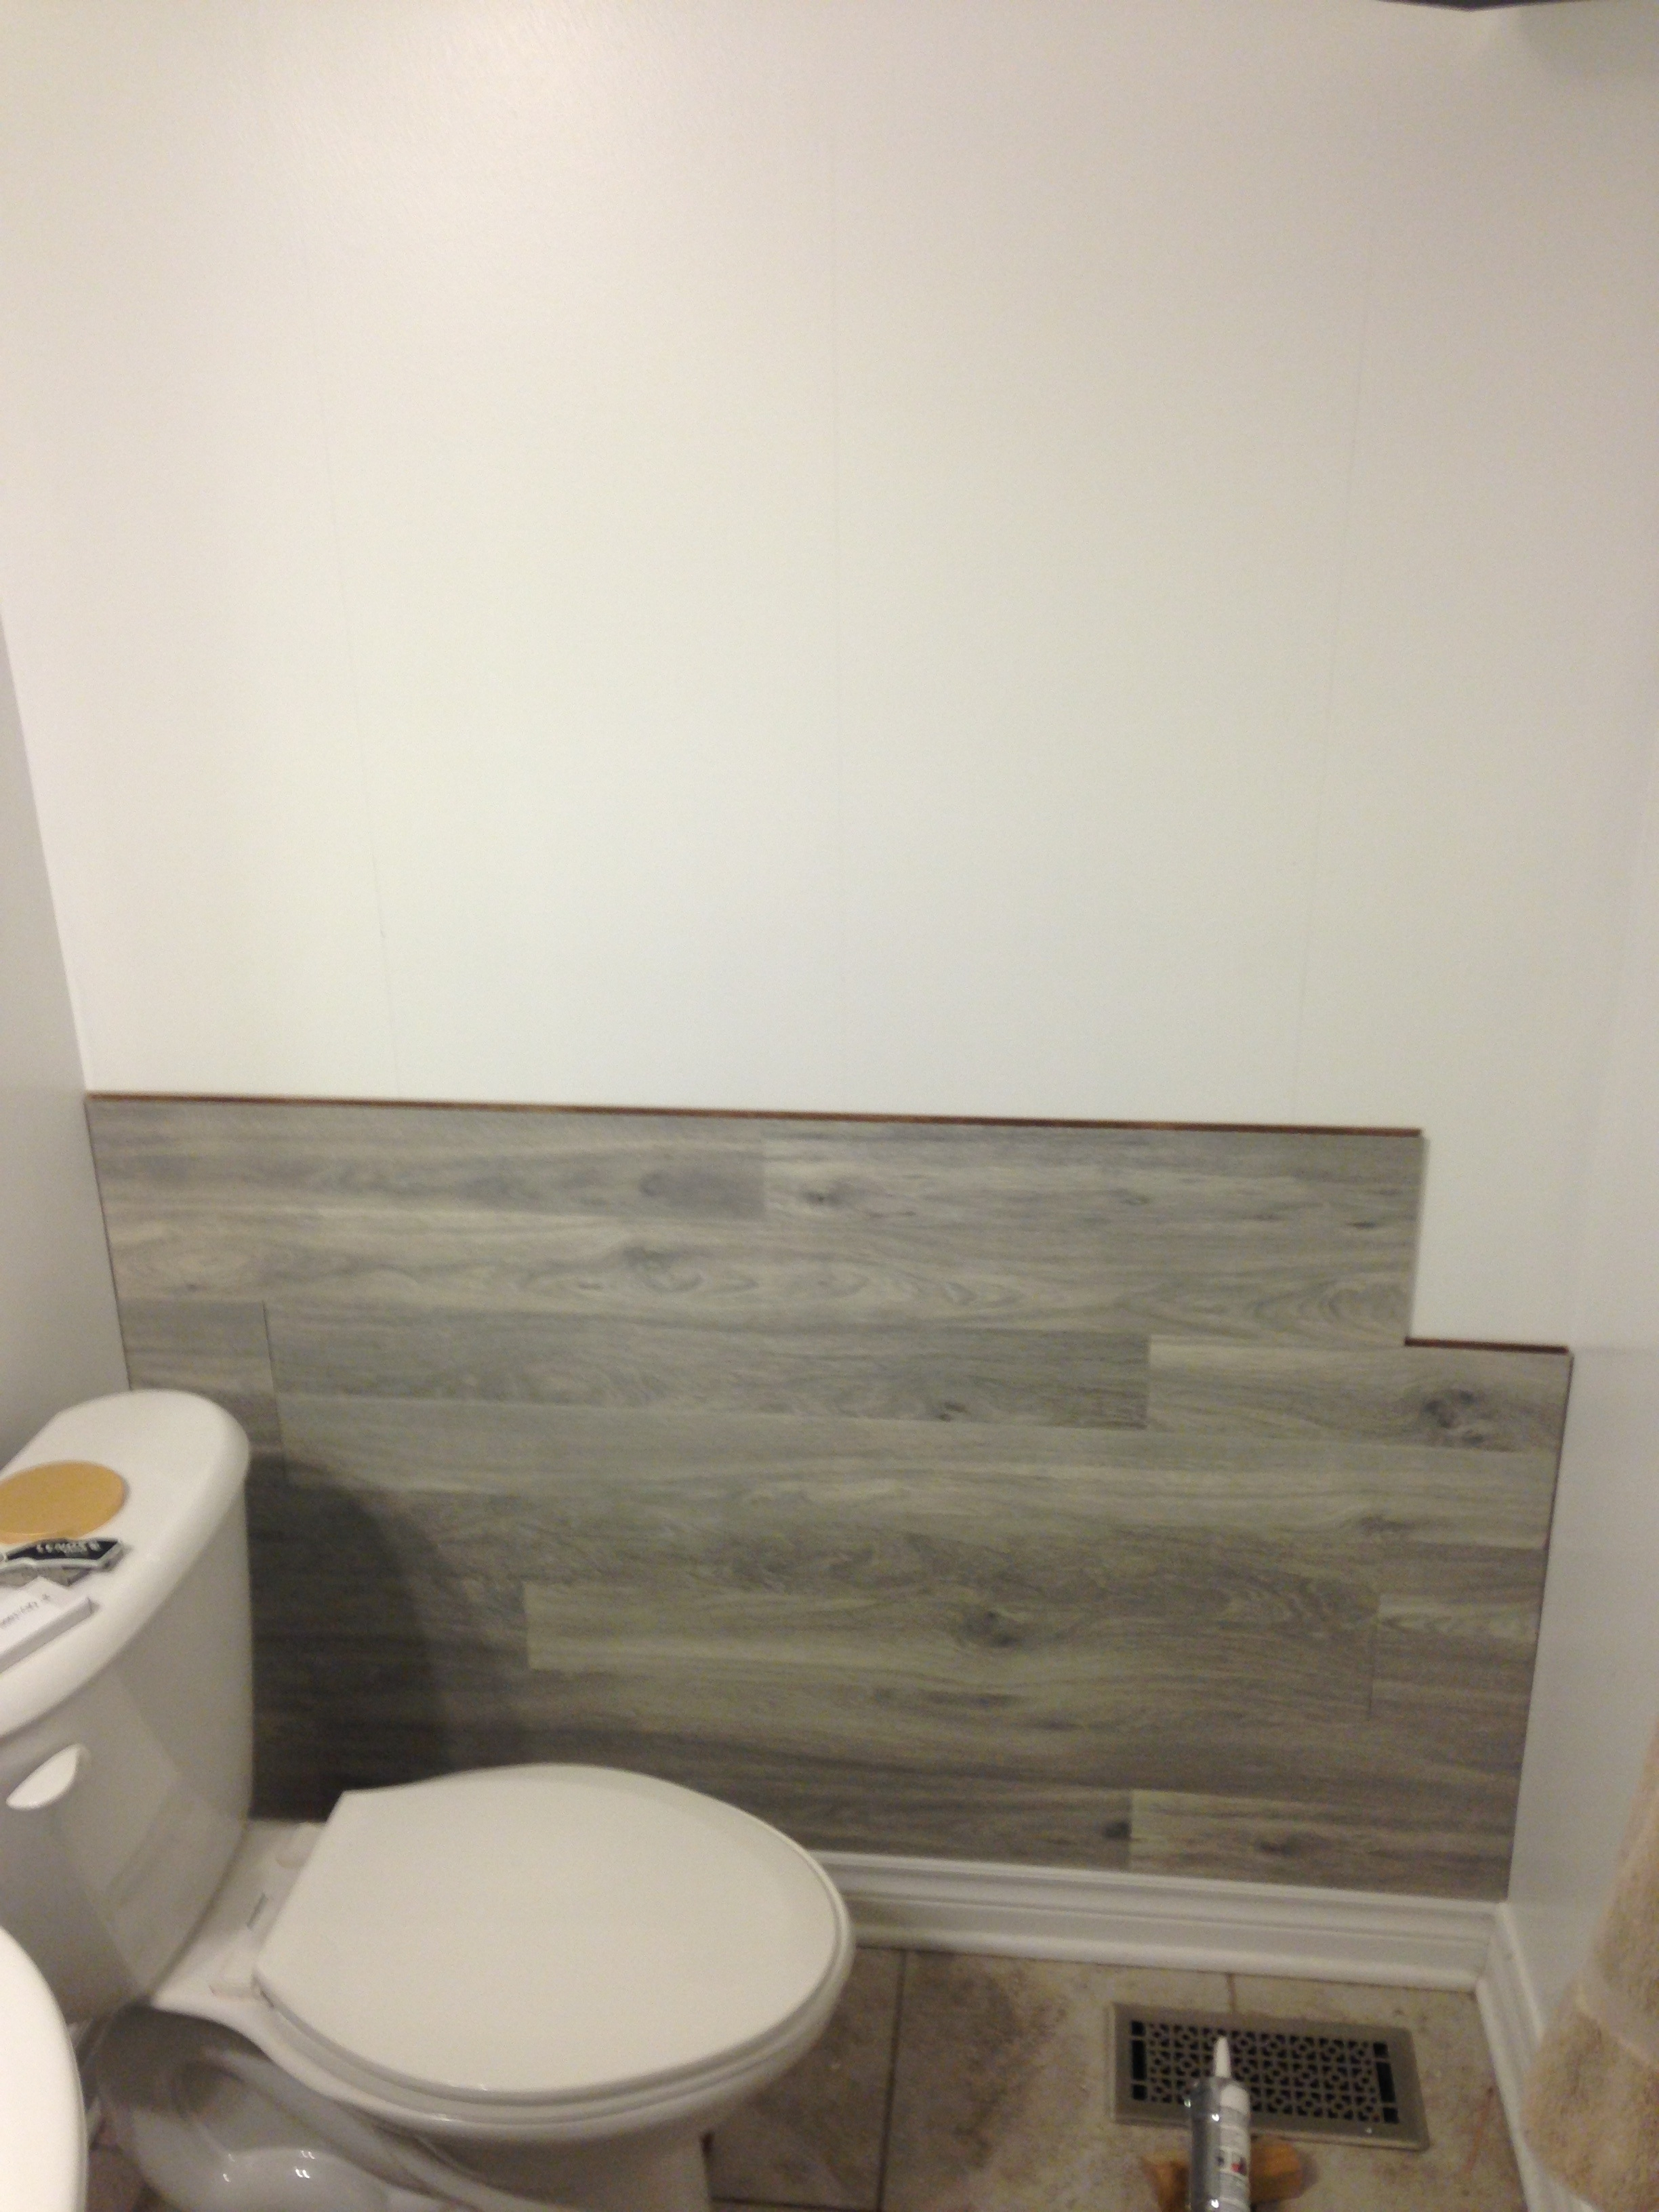 Bored To Floored: Laminate Floor Accent Wall Diy | Keepstead Inside 2017 Wall Accents With Laminate Flooring (View 6 of 15)